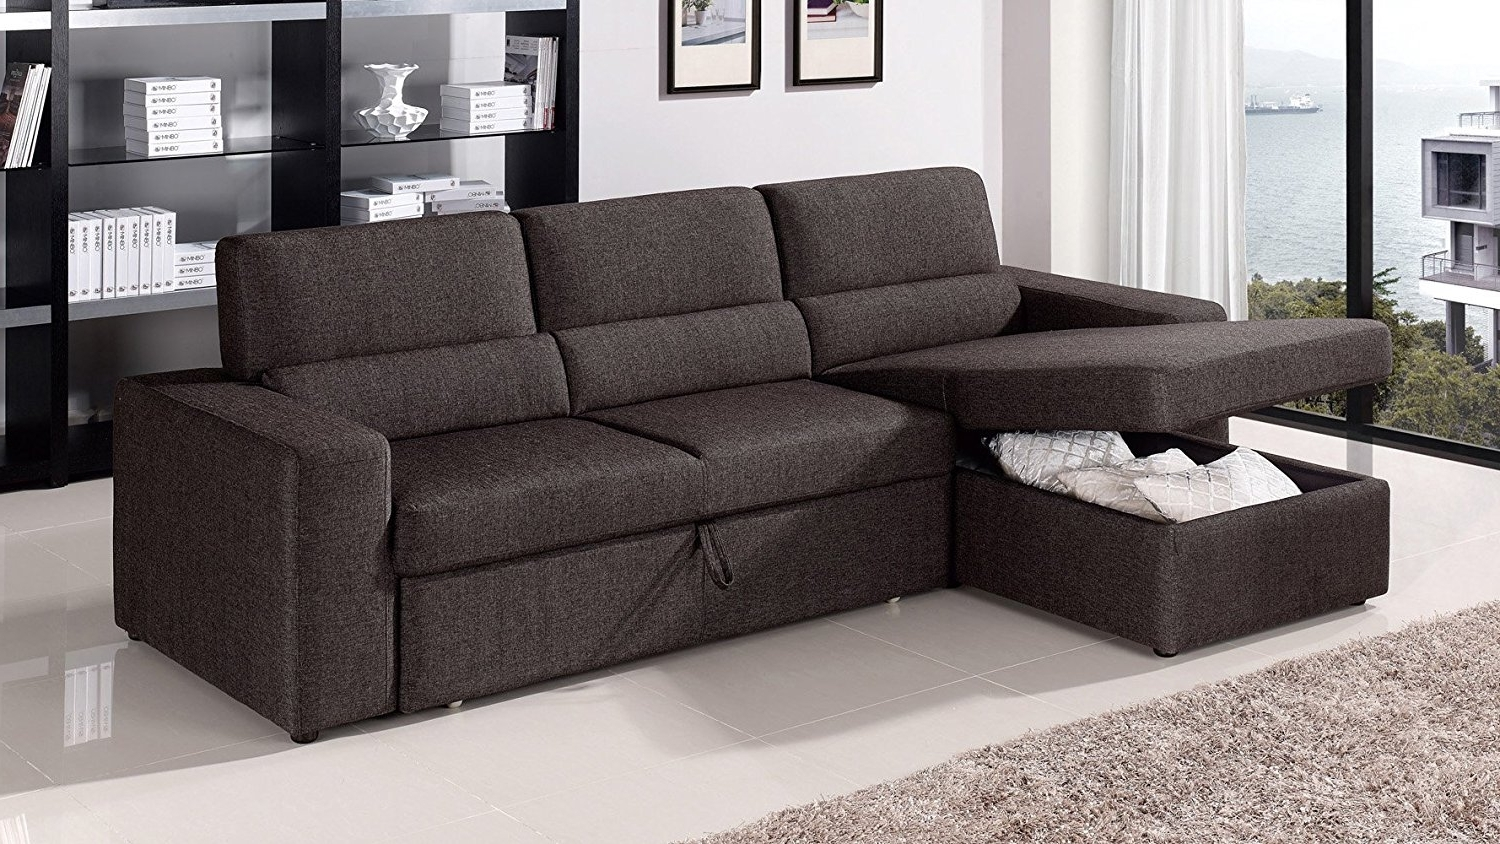 Amazon: Black/brown Clubber Sleeper Sectional Sofa – Left For Most Up To Date Sleeper Chaise Sofas (View 4 of 15)